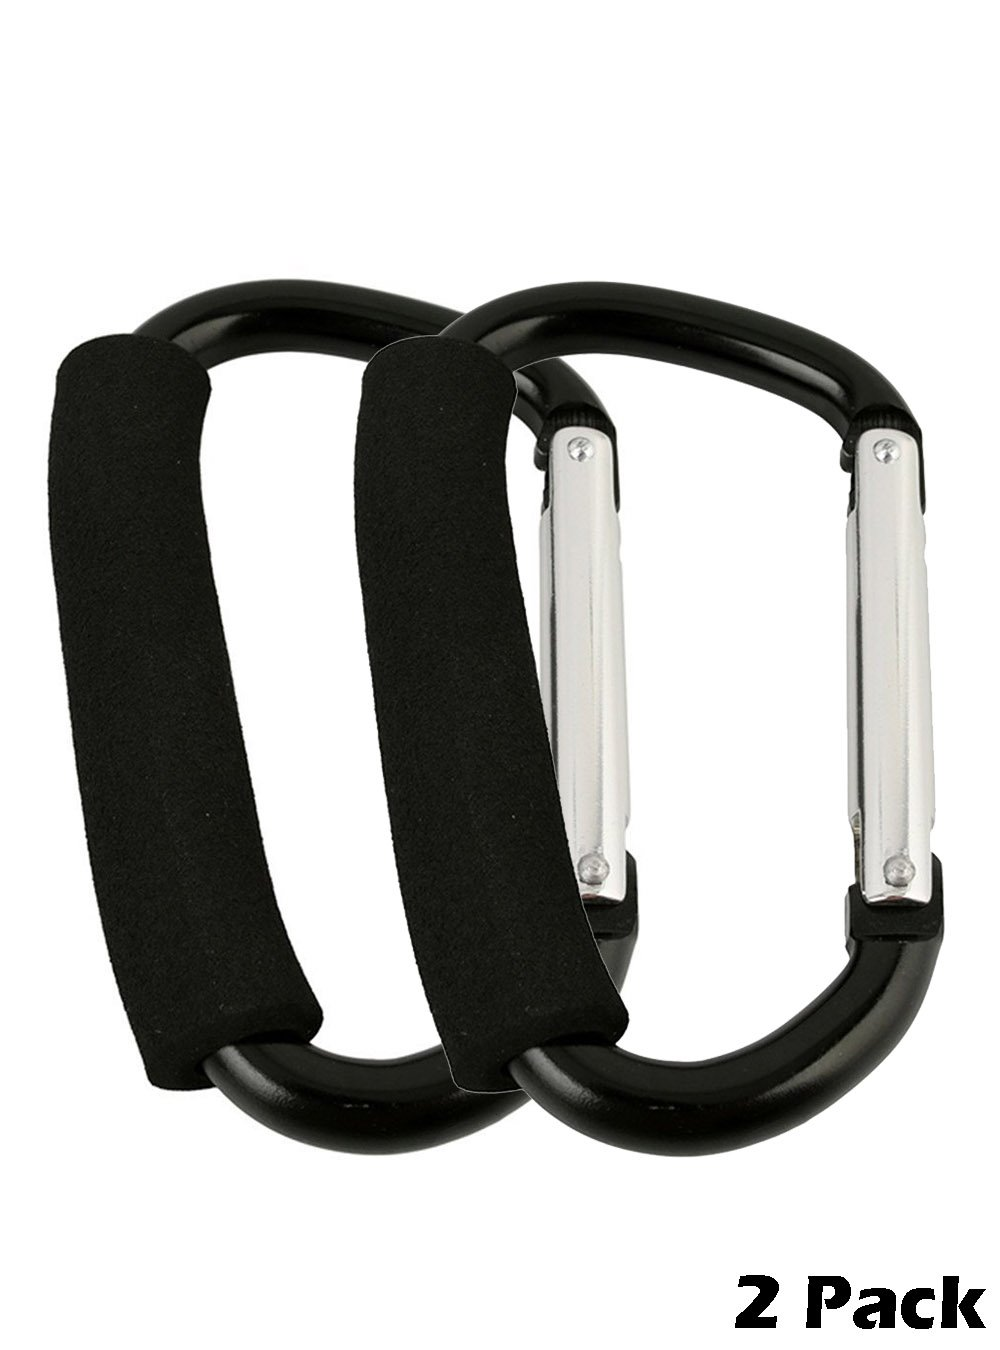 Snowmanna- Assorted Colors Large D Type Shopping Bag Hook Clip Carry Handle Carabiner with Sponge for Baby Pushchair Pram Stroller Hanger Trolley Mummy Clip Holder (black(2pcs)) by Snowmanna